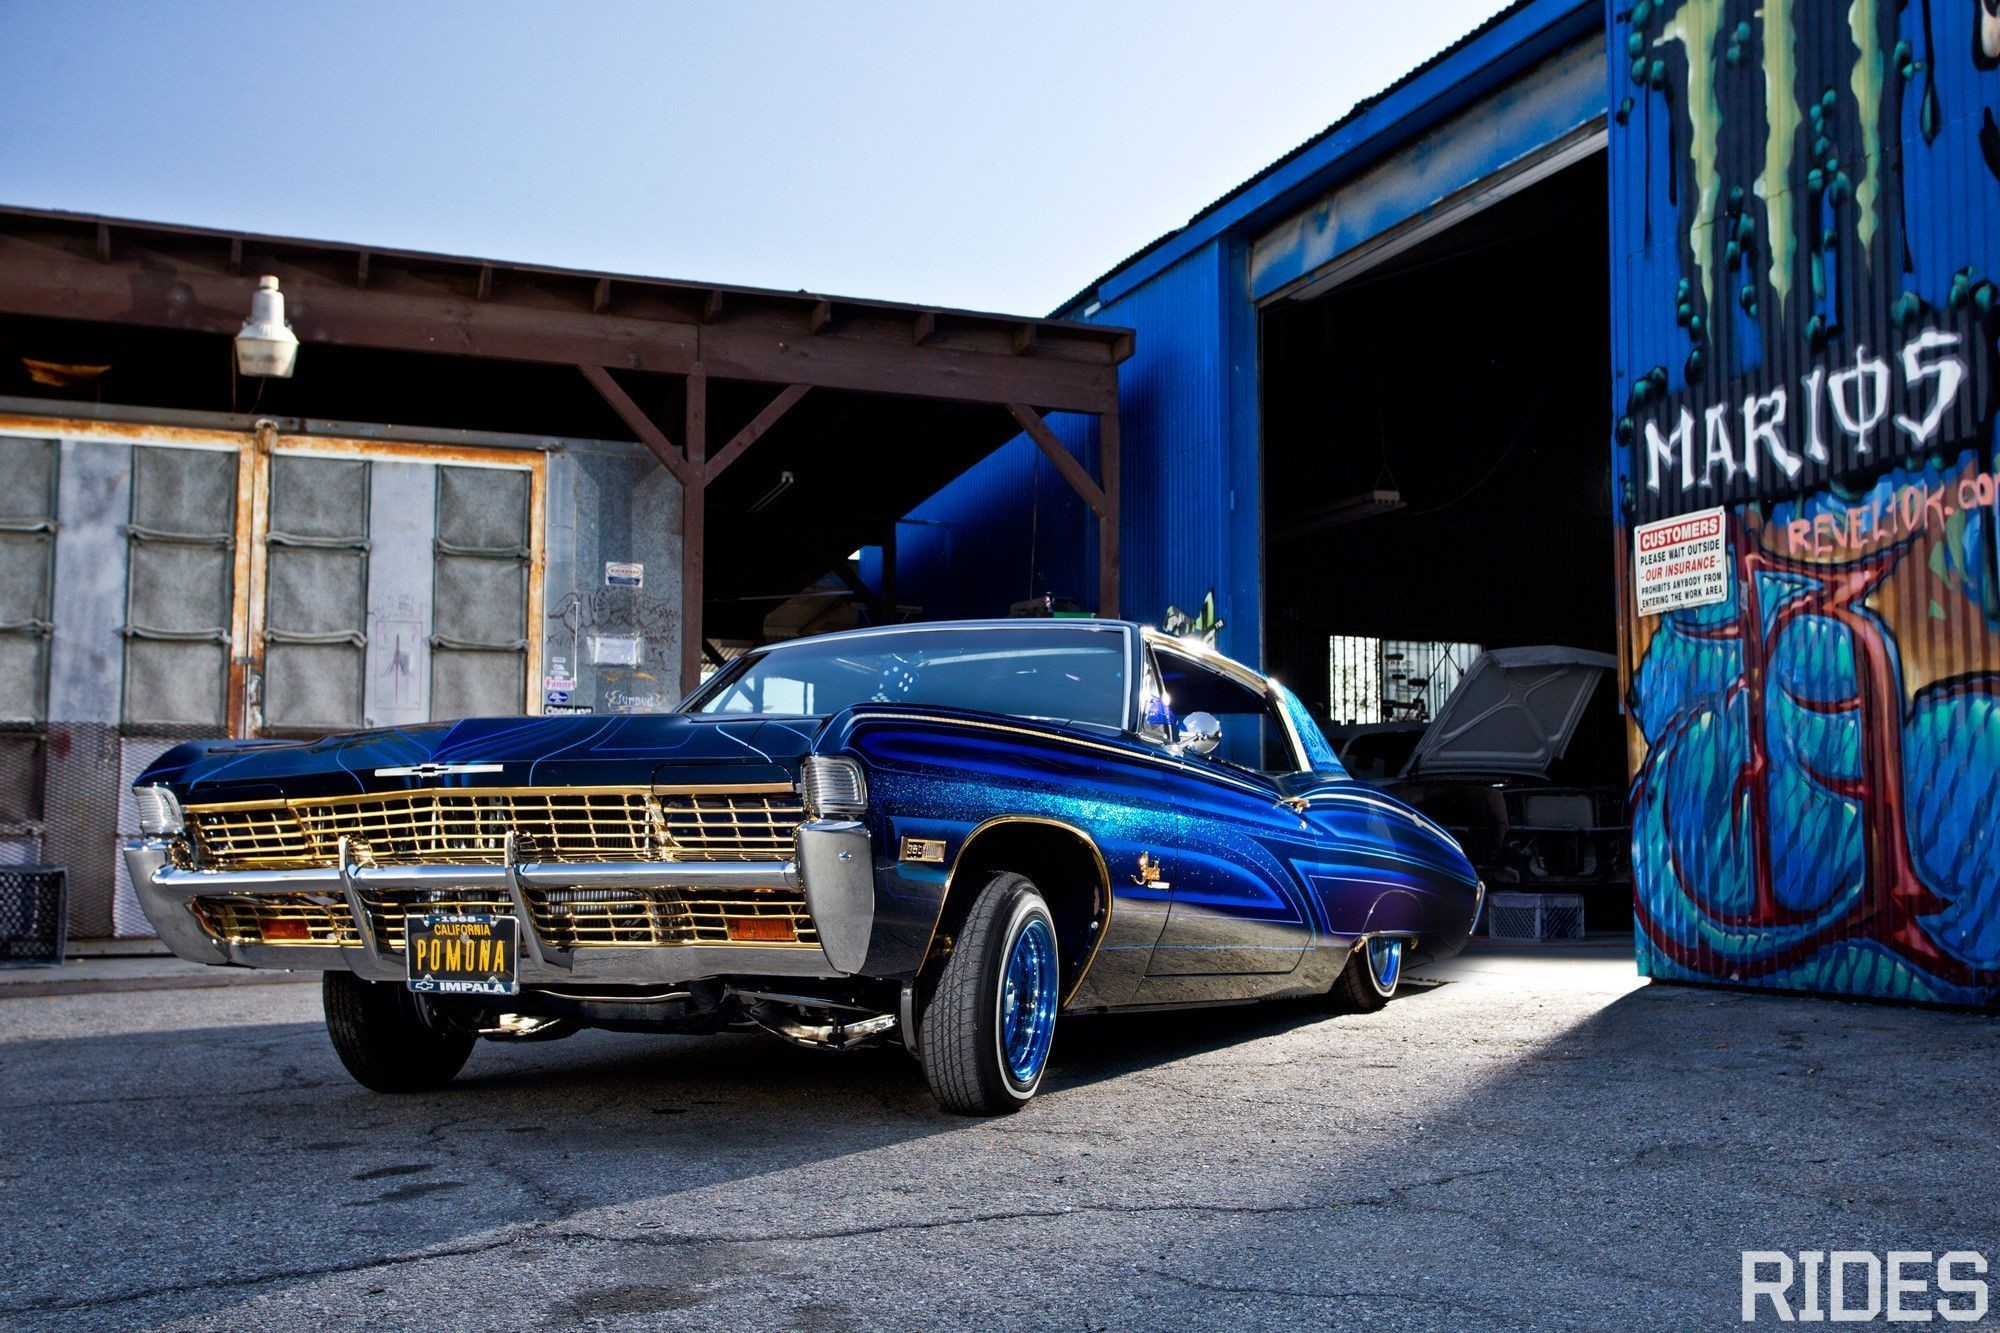 2000x1333  Awesome Lowrider Car Wallpapers Free Hd Widescreen Cave Of Iphone